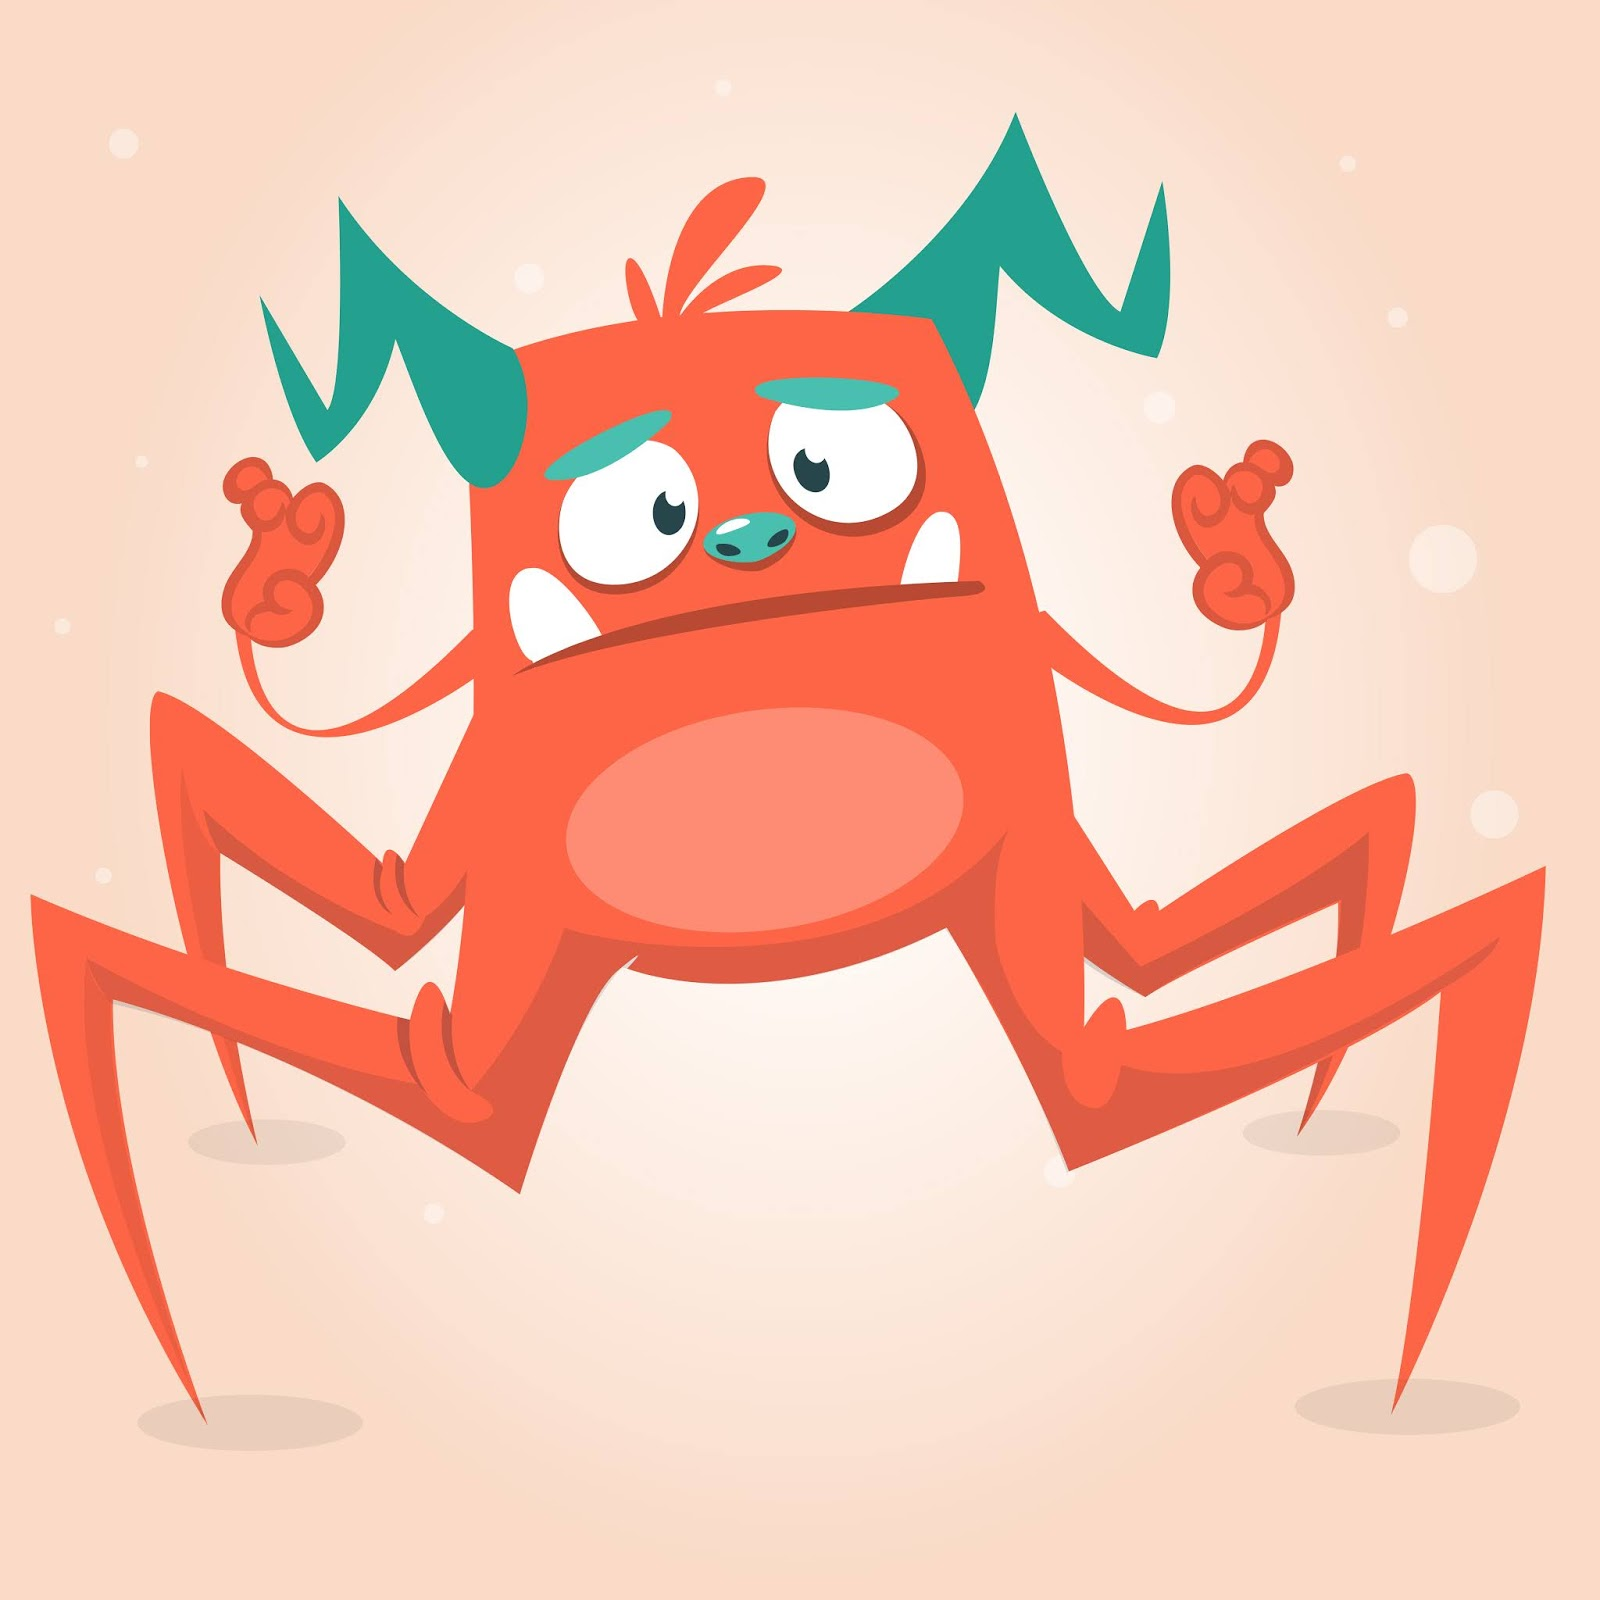 Funny Cartoon Style Monster Halloween Free Download Vector CDR, AI, EPS and PNG Formats